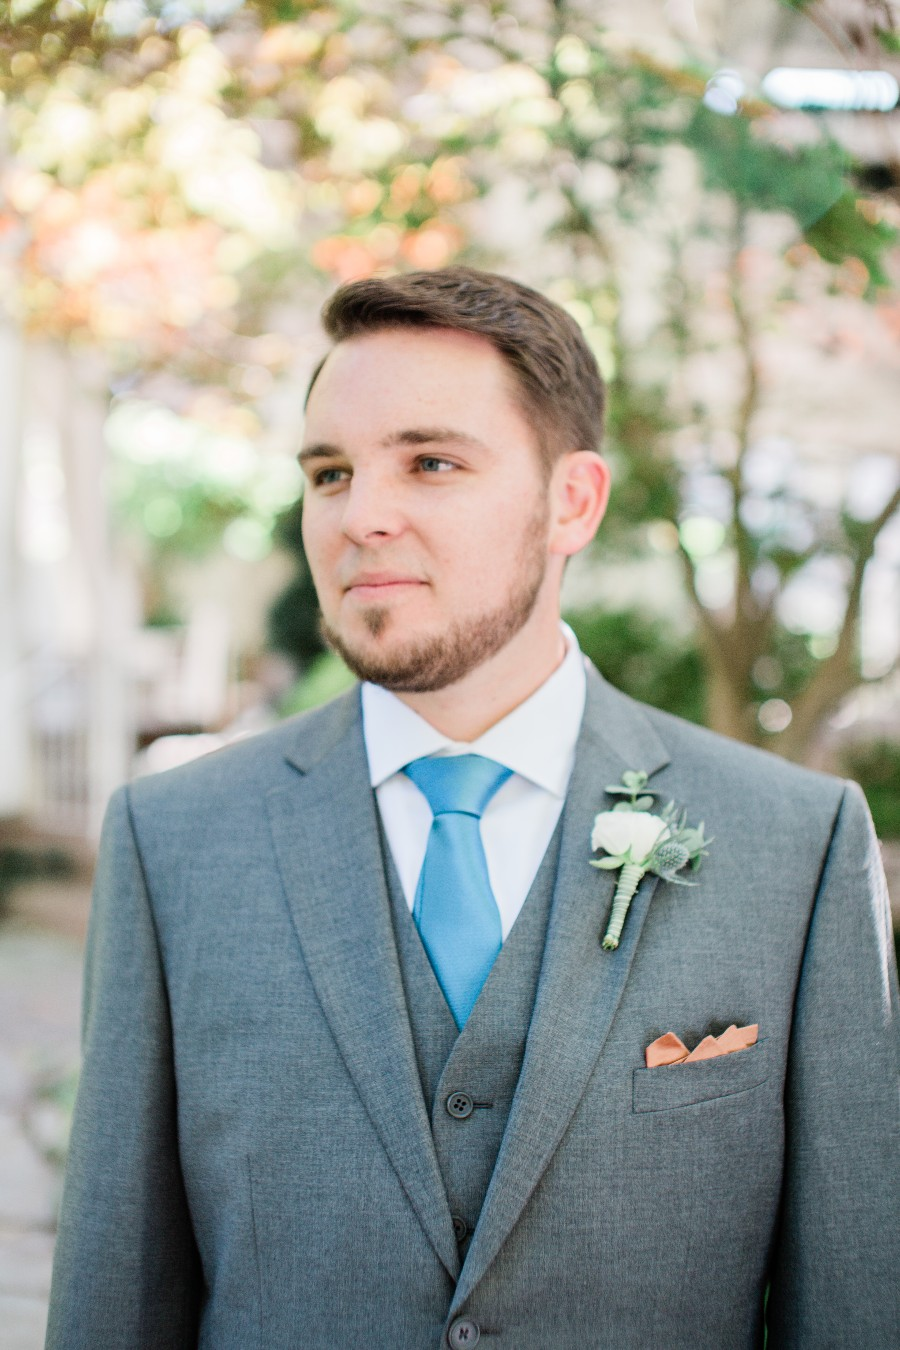 Groom in grey suite with blue tie